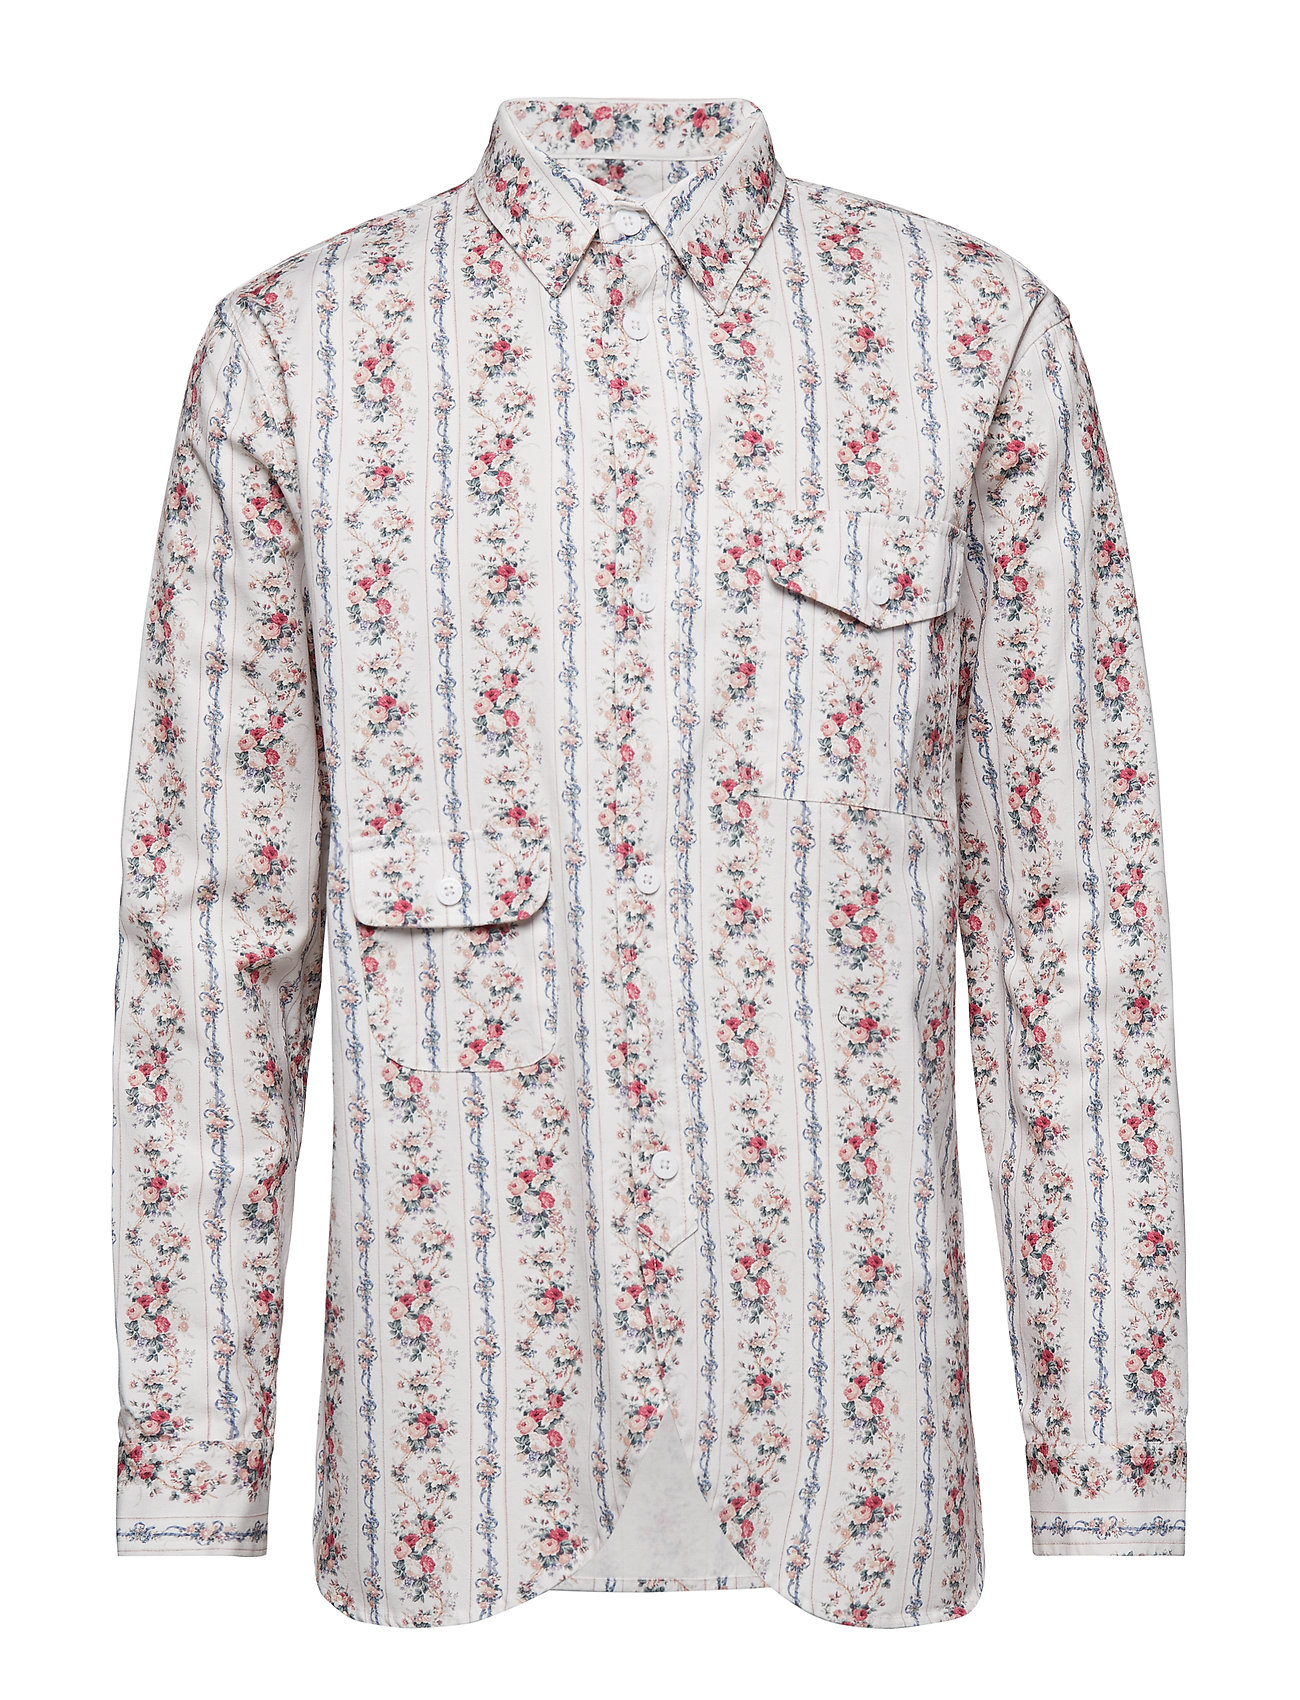 HAN Kjøbenhavn Army Shirt - POWDER FLOWERS